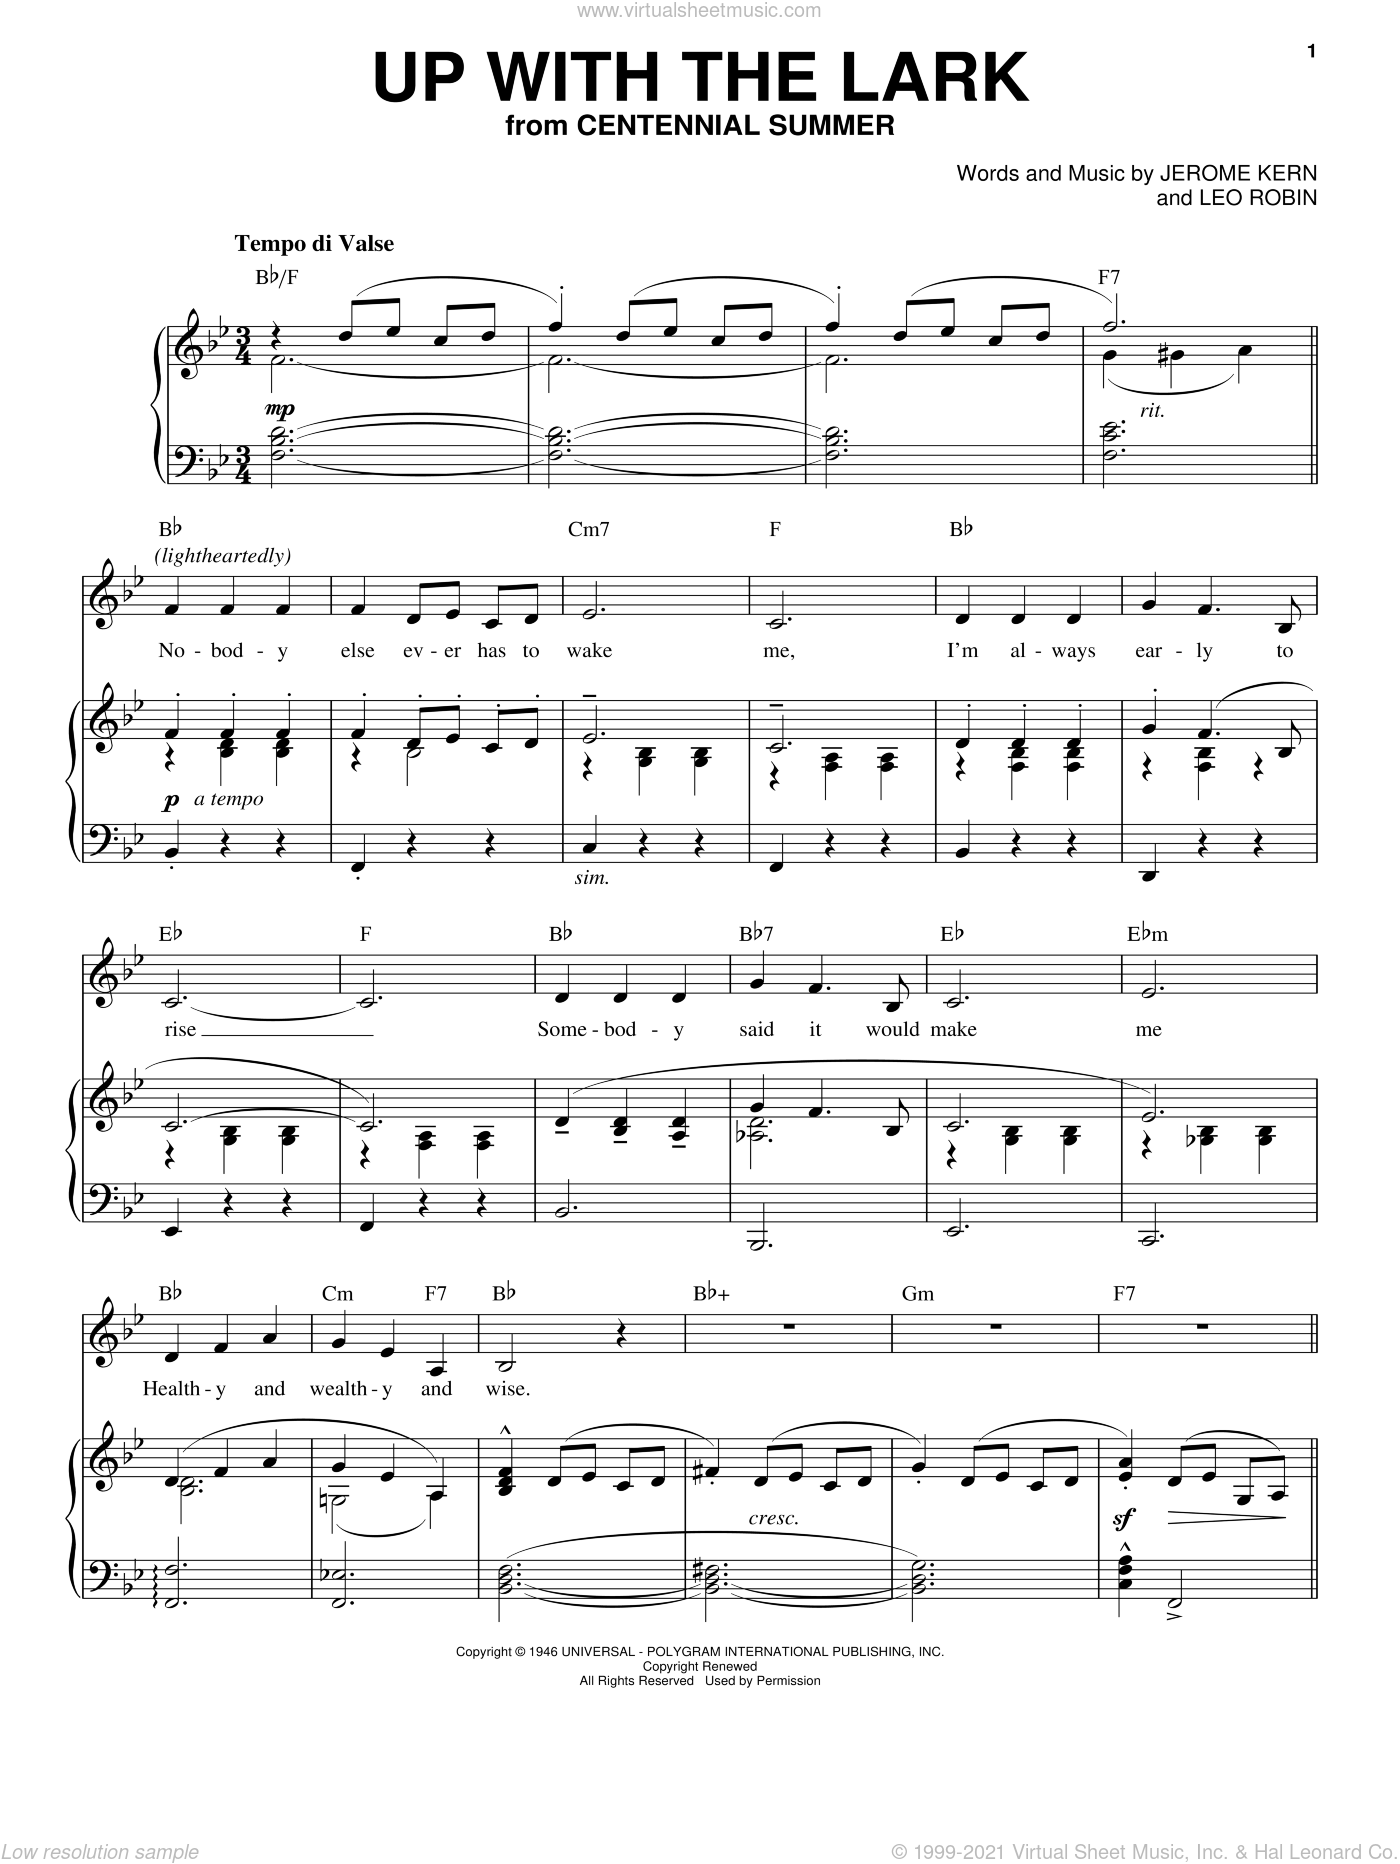 Up With The Lark sheet music for voice, piano or guitar by Leo Robin